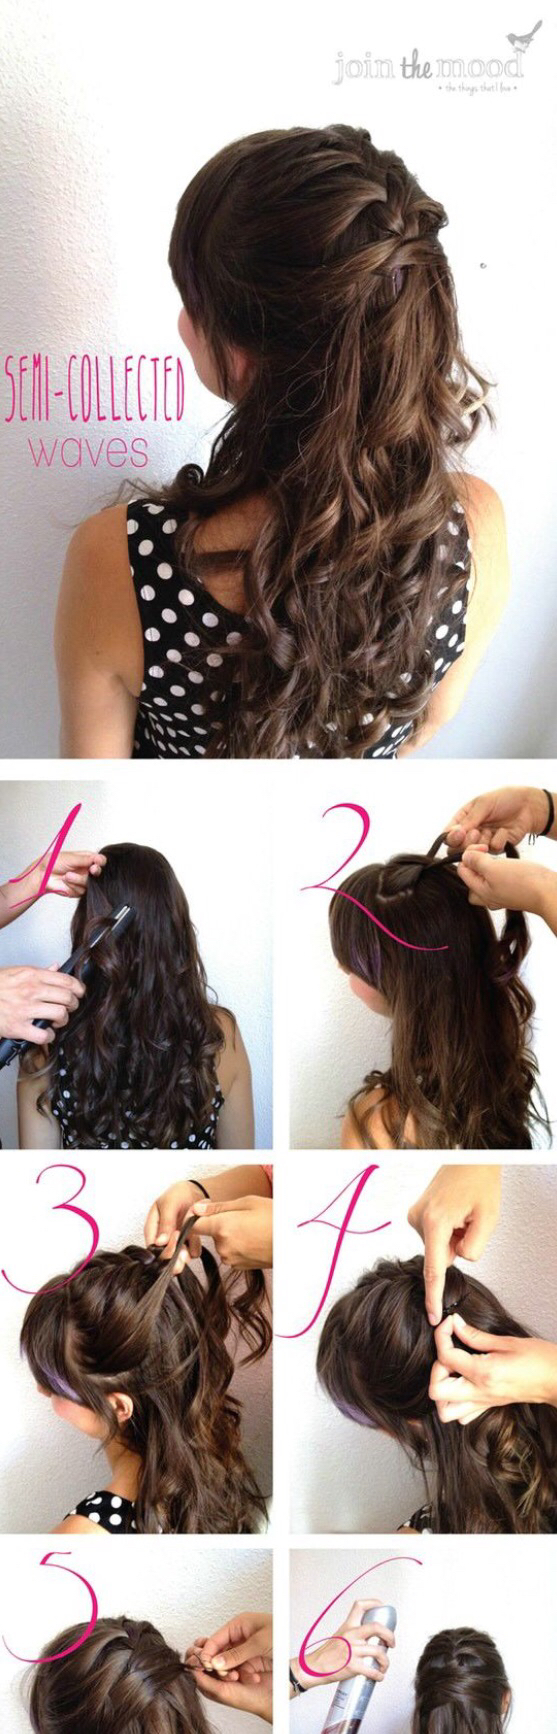 Very pretty pelo trenzado pinterest hair style makeup and